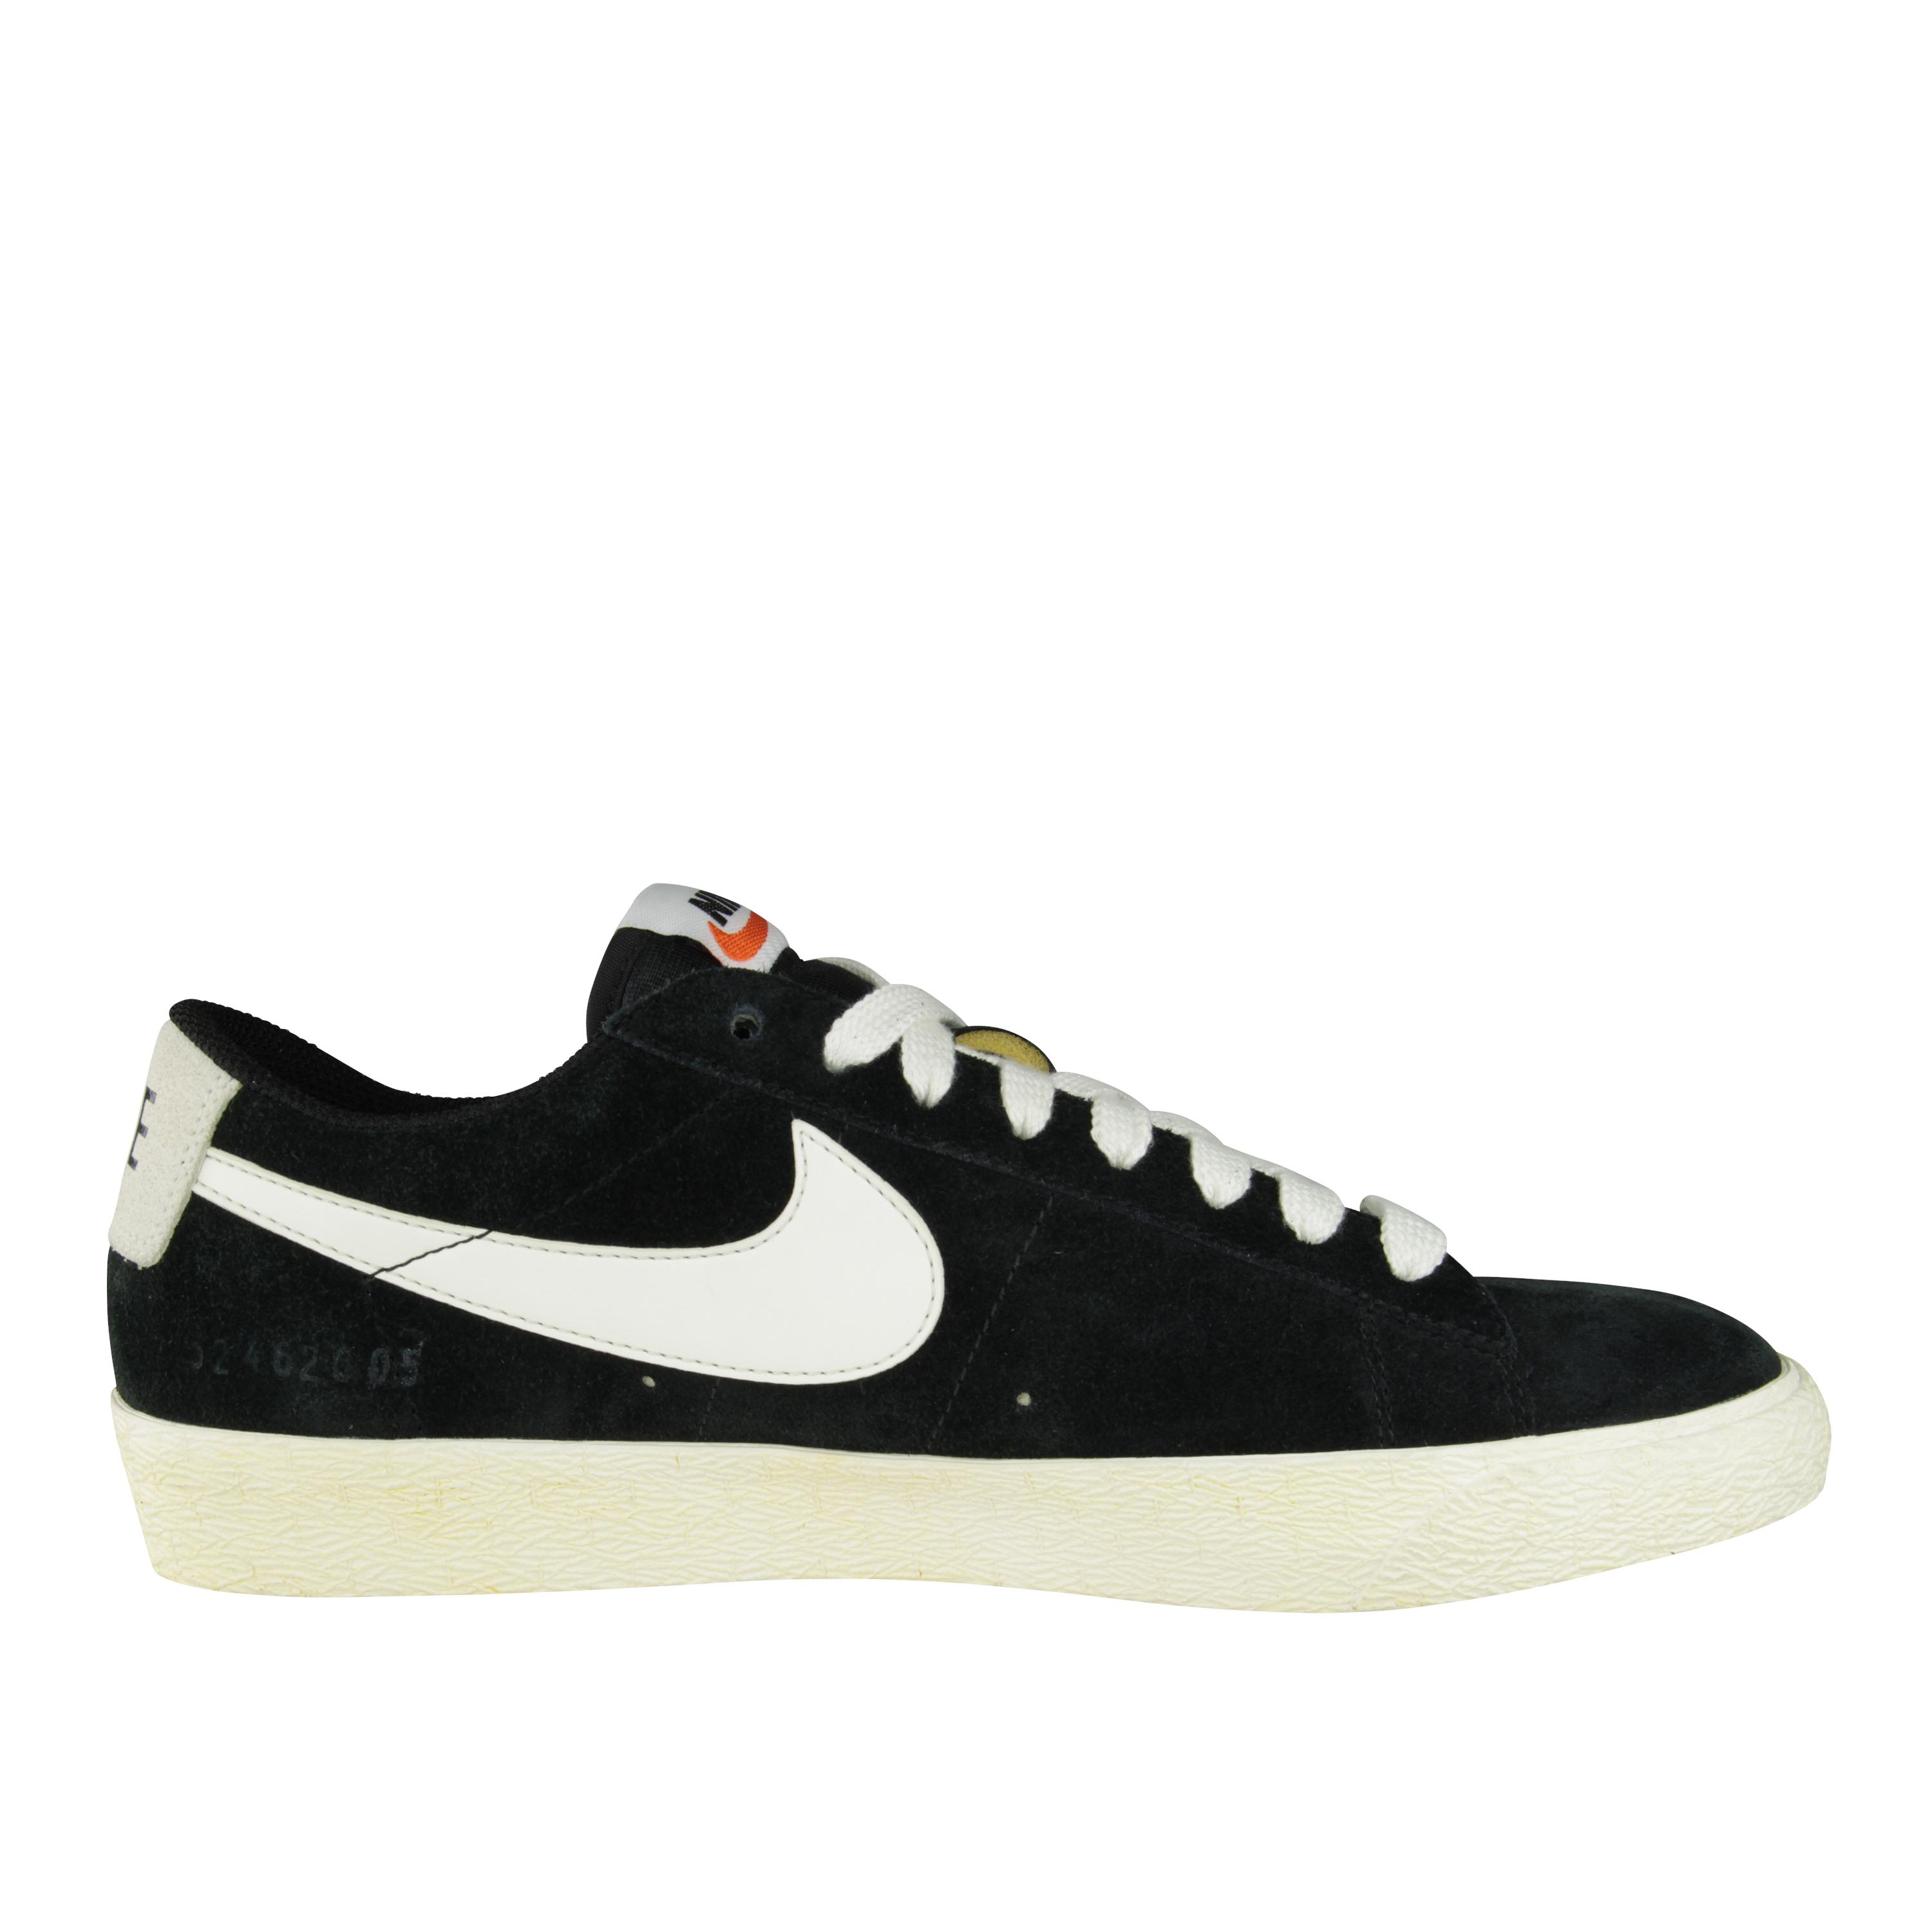 Nike Blazer Vintage Low - Foot Locker